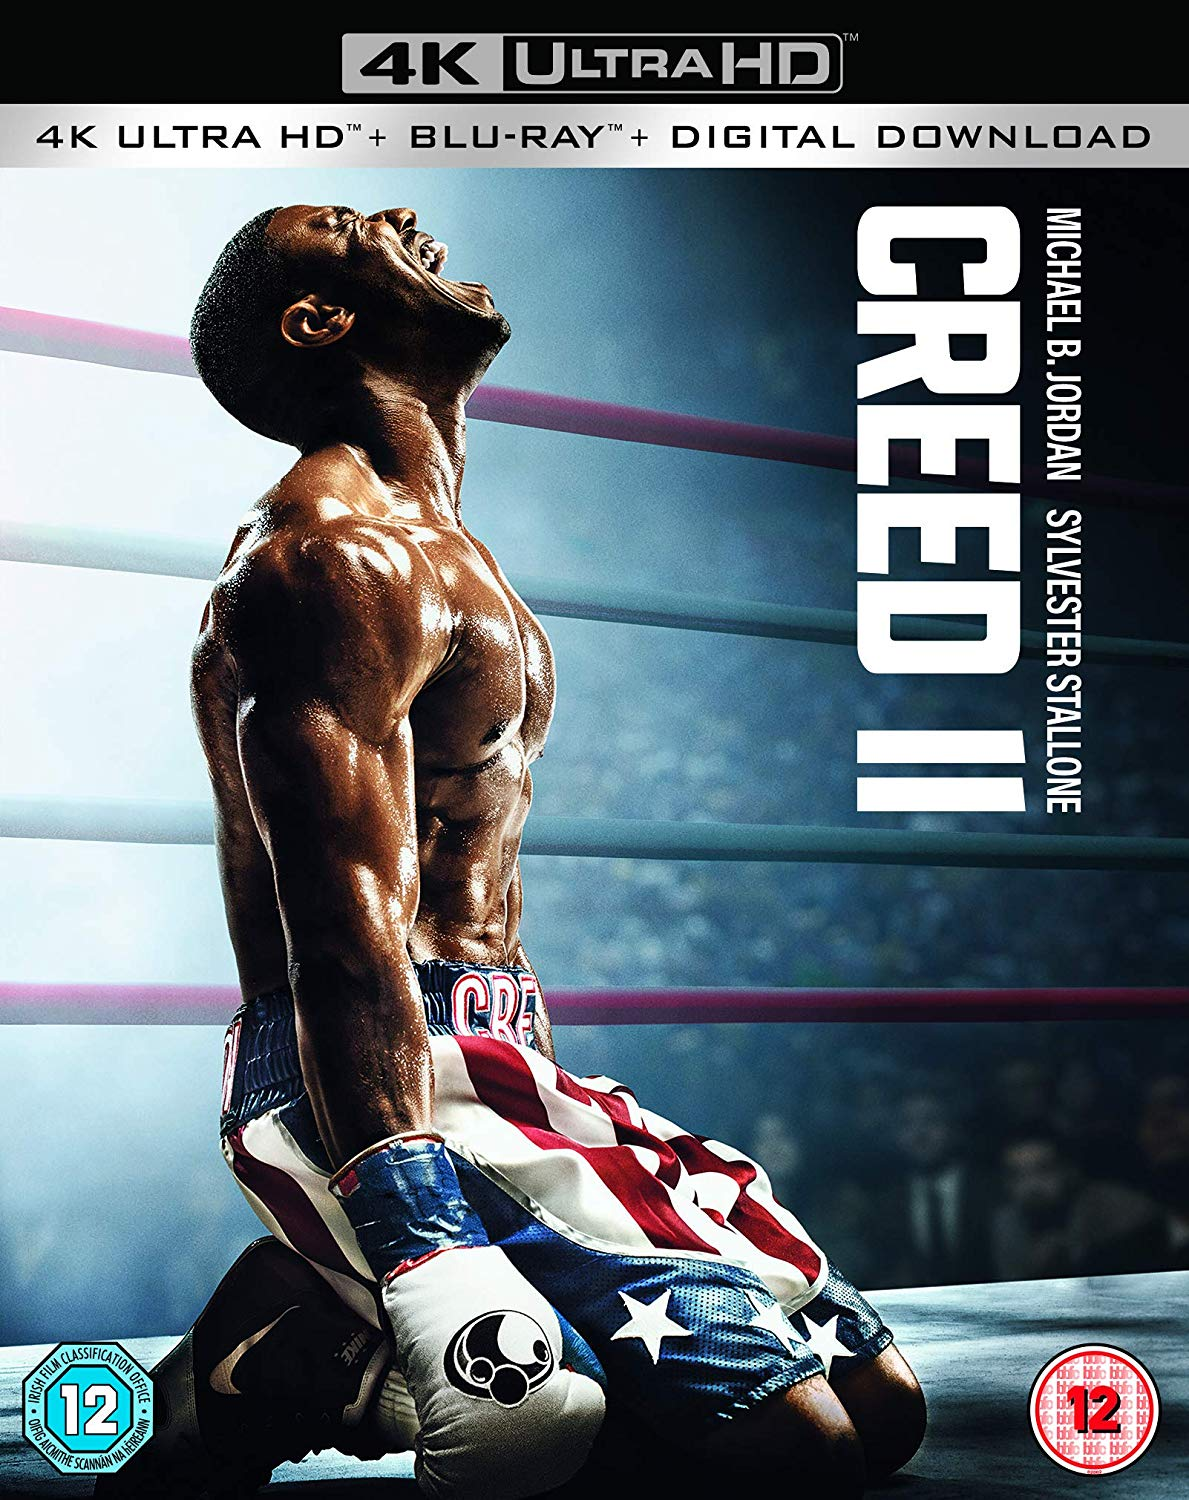 Creed II - Steven Caple Jr. [4K]